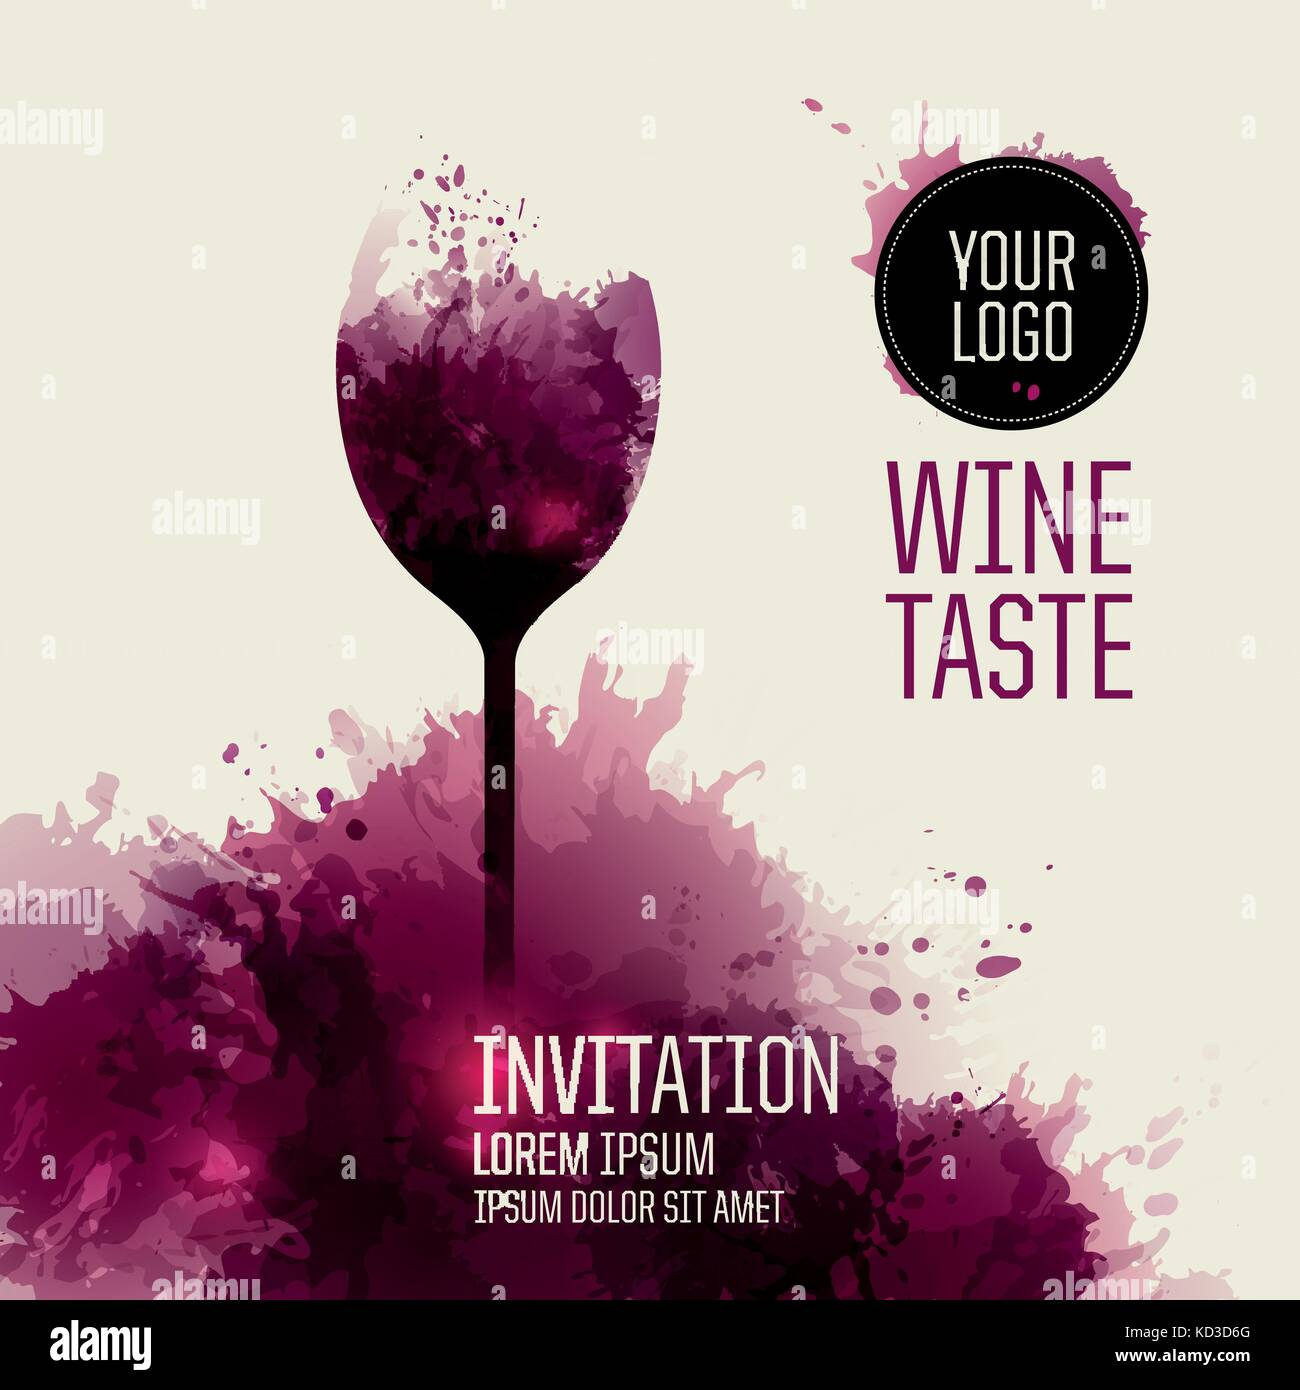 Invitation template for wine event or party Stock Vector Art ...